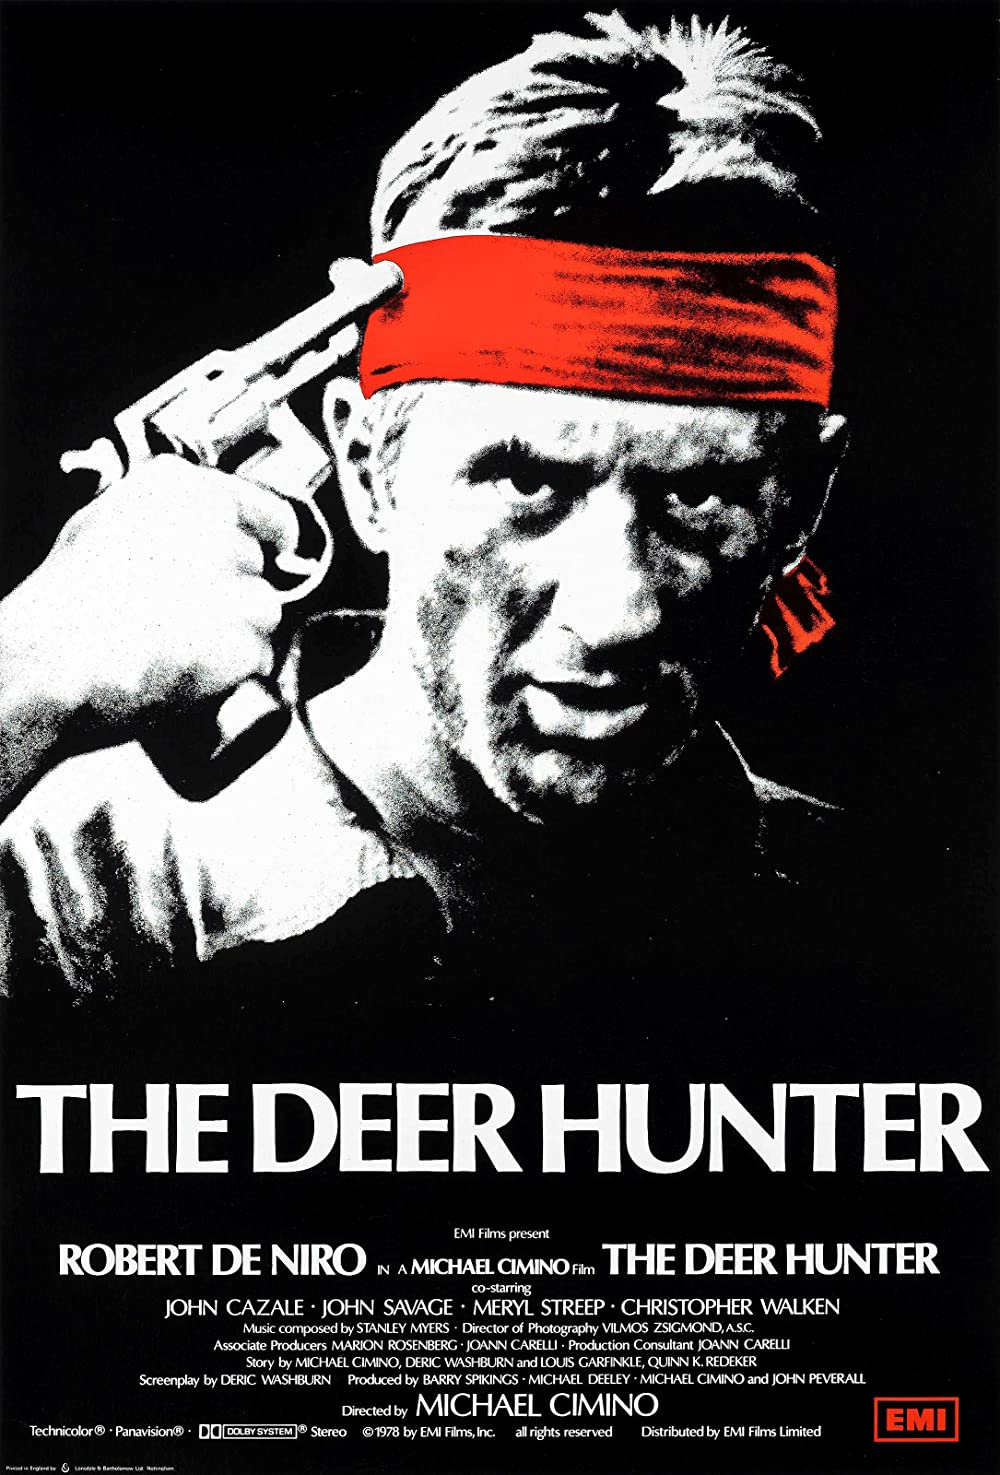 Die durch die Hölle gehen: Directed by Michael Cimino. With Robert De Niro, John Cazale, John Savage, Christopher Walken. An in-depth examination of the ways in which the U.S. Vietnam War impacts and disrupts the lives of people in a small industrial...